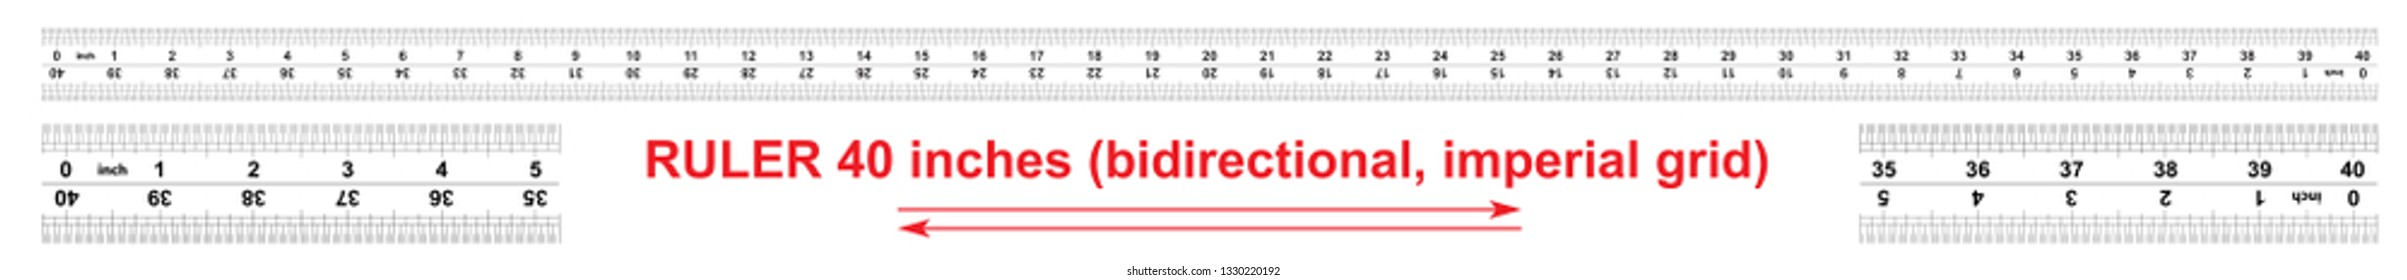 Ruler bidirectional 40 inches. Imperial calibration grid. The division price is 1/32 inch. Ruler double sided. Precise measuring tool.